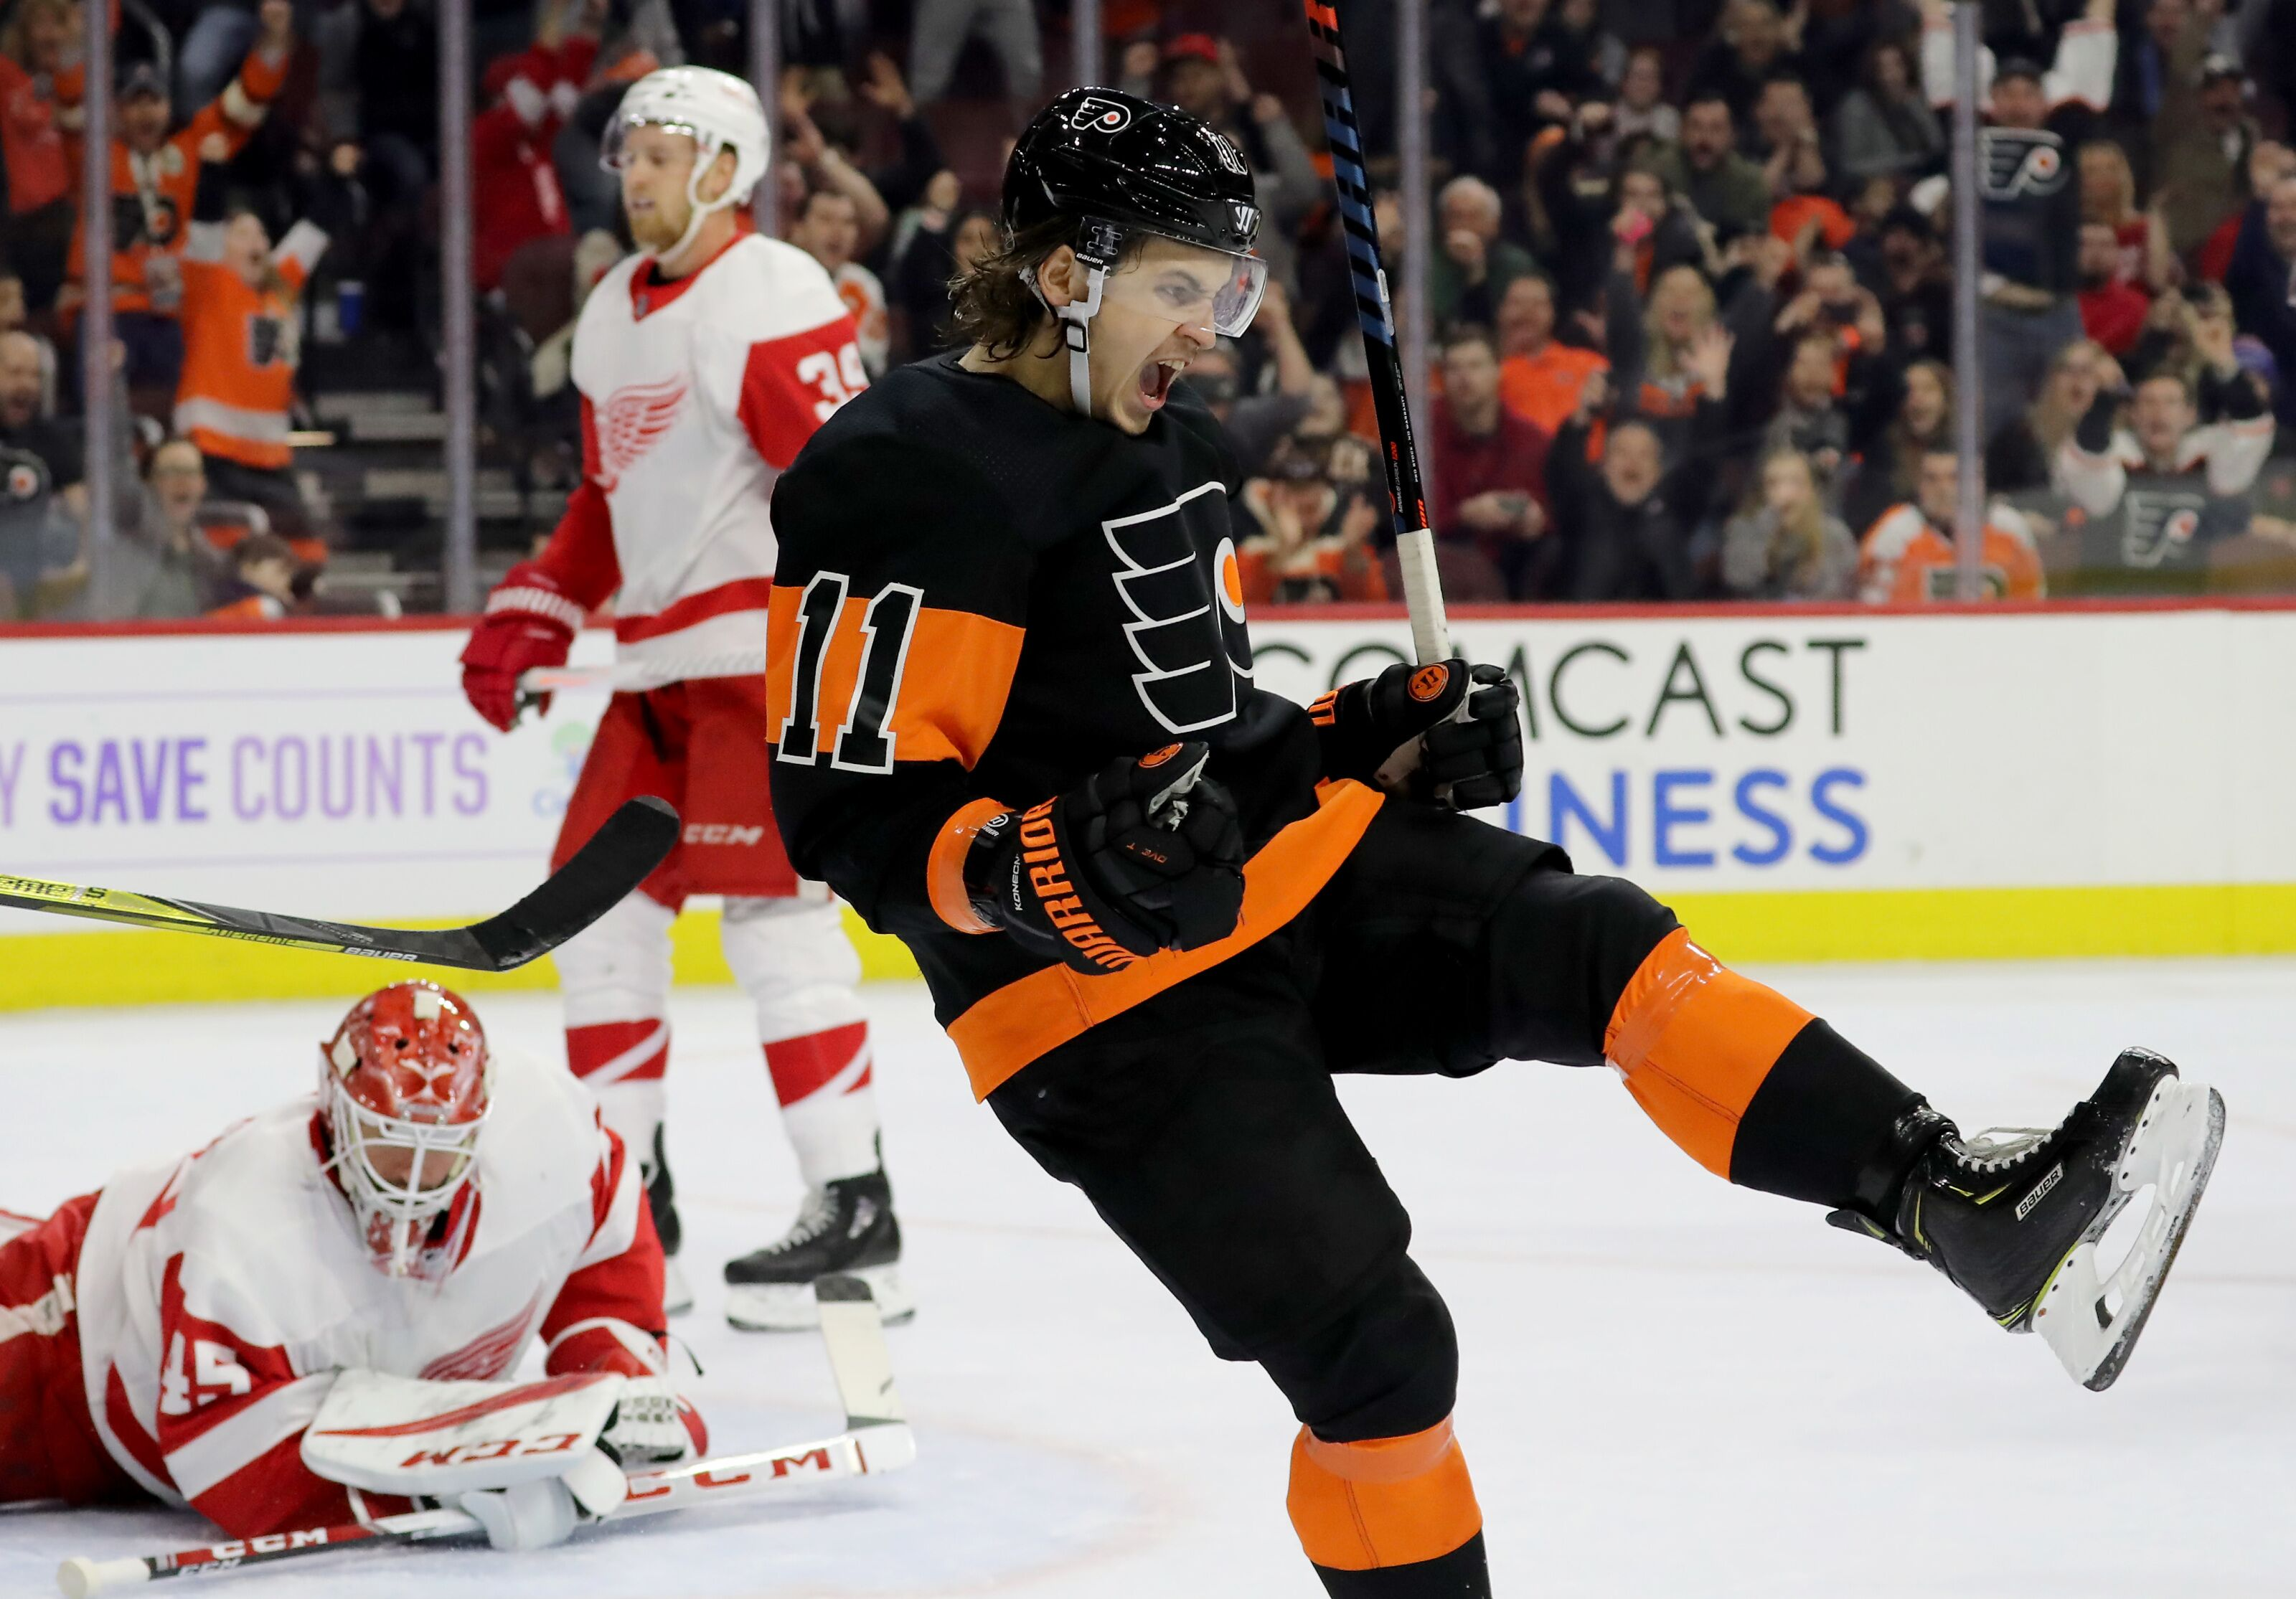 Philadelphia Flyers: How Much Should Travis Konecny Get Paid?